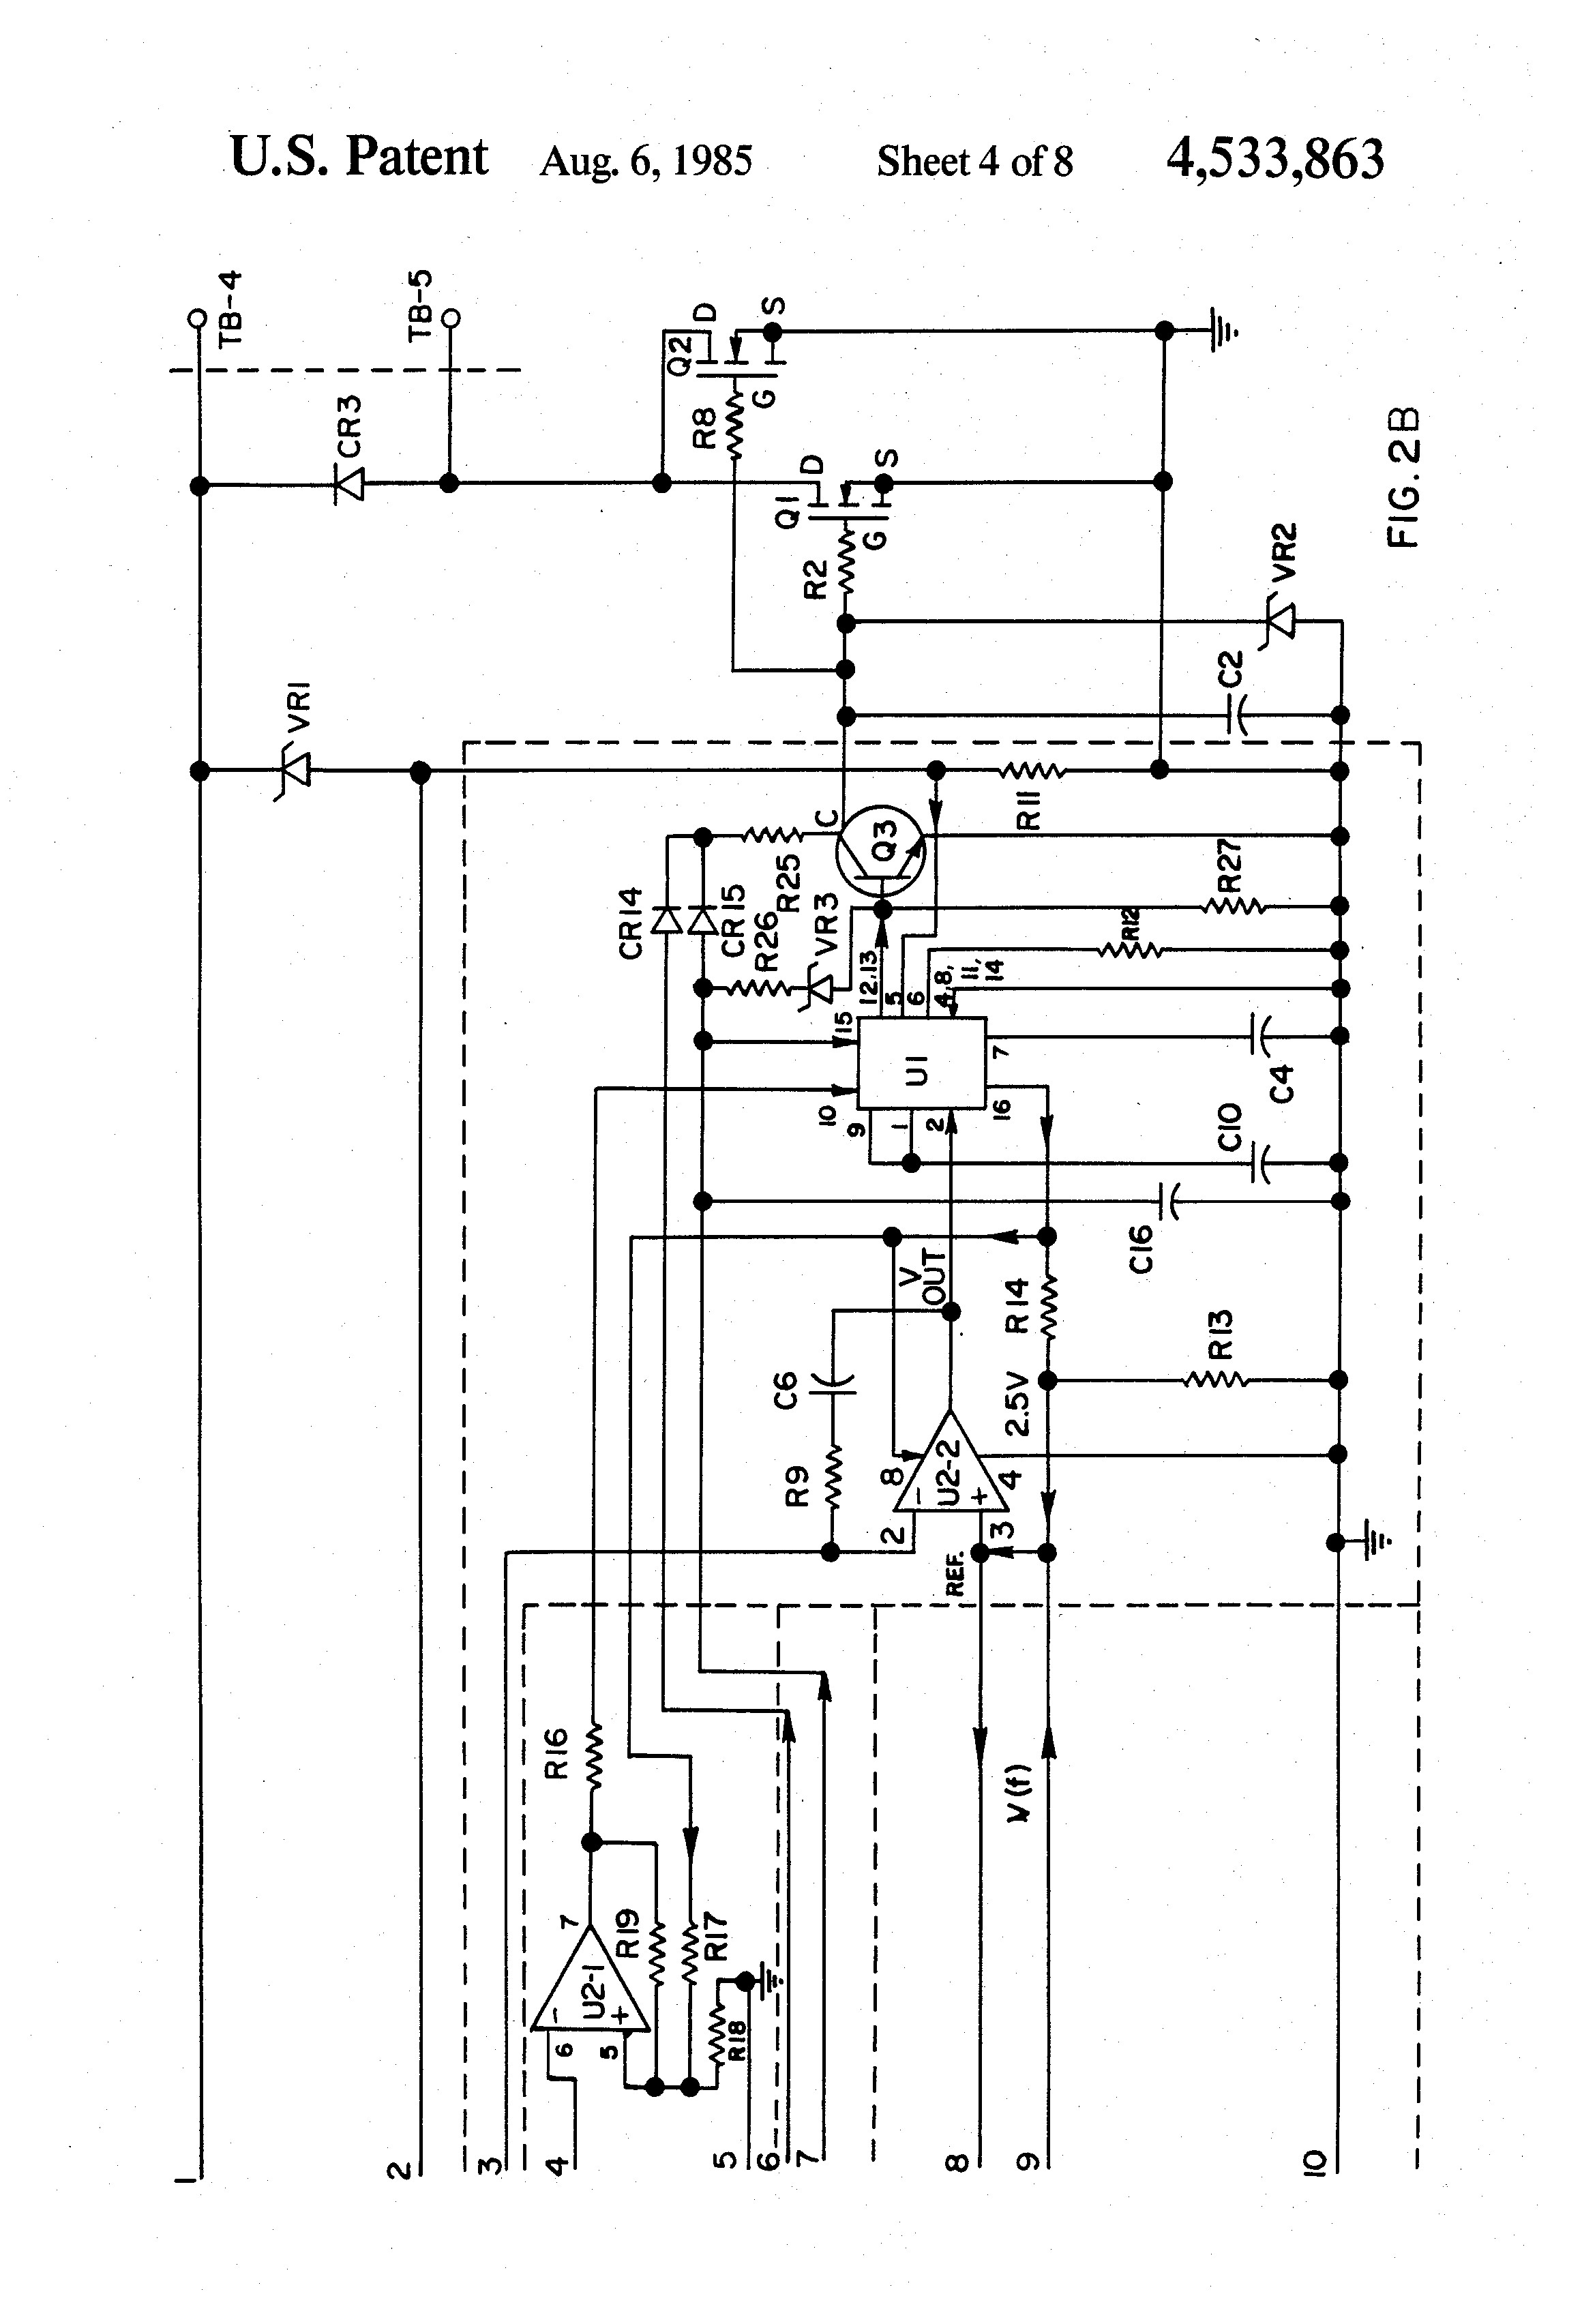 [DIAGRAM] Wiring Diagram 12 Volt Alternator FULL Version